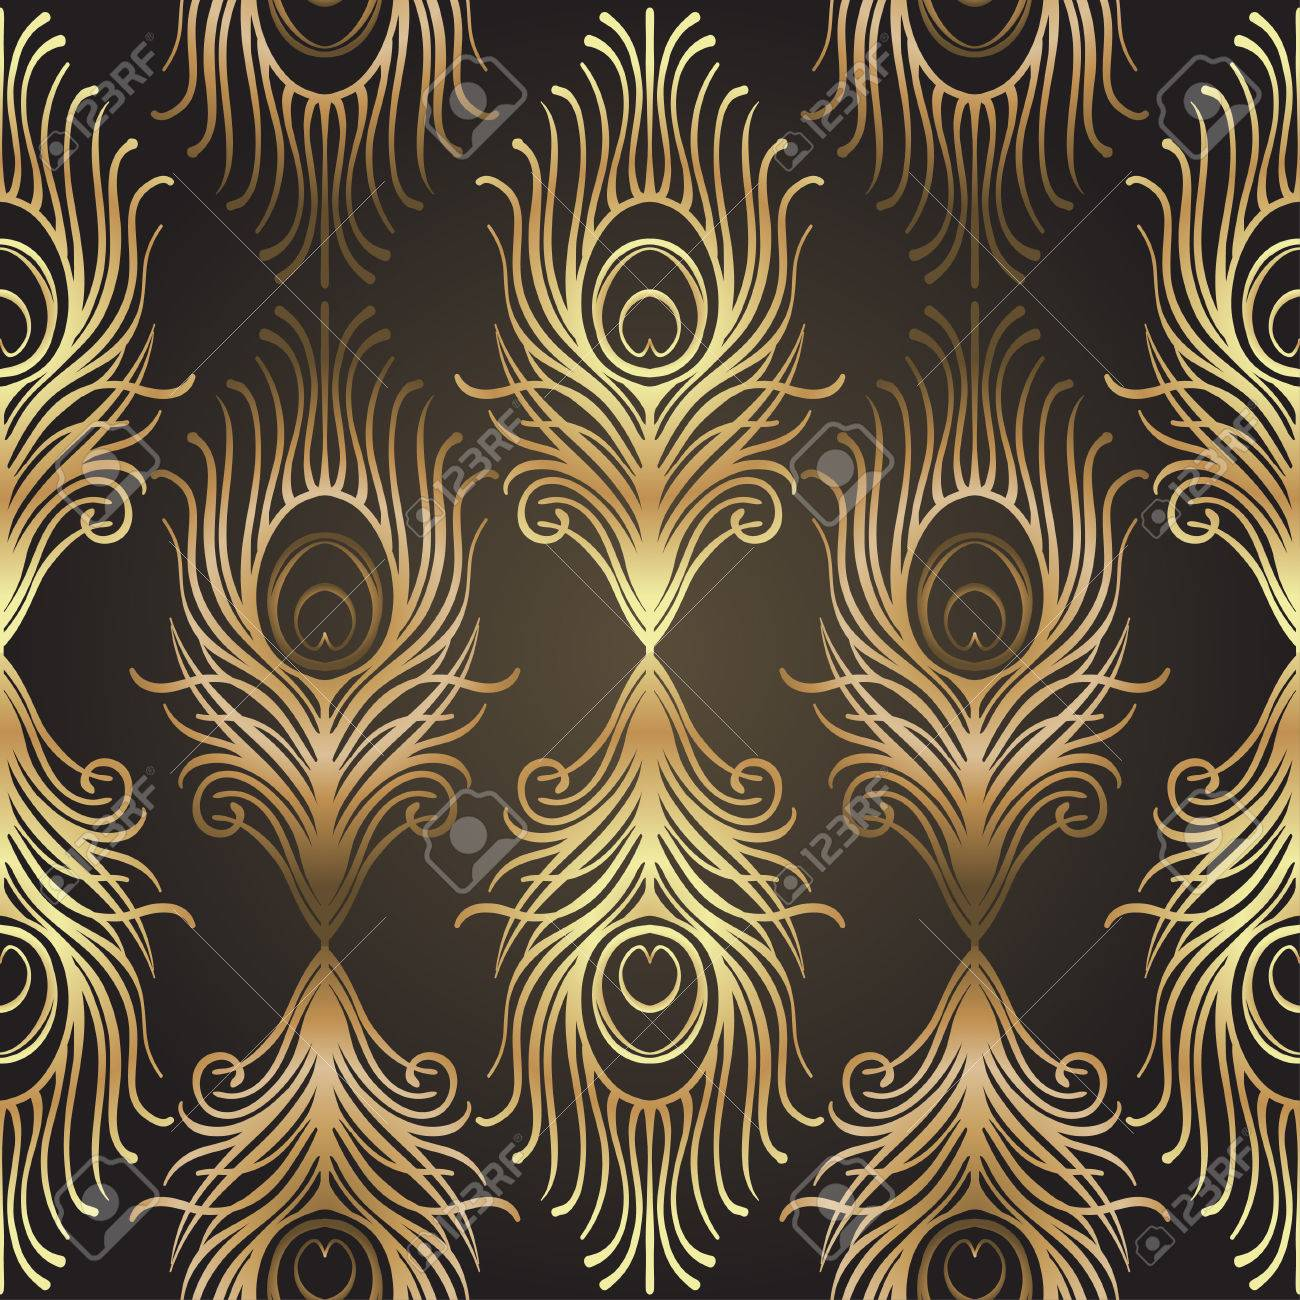 Art deco style geometric seamless pattern in black and gold